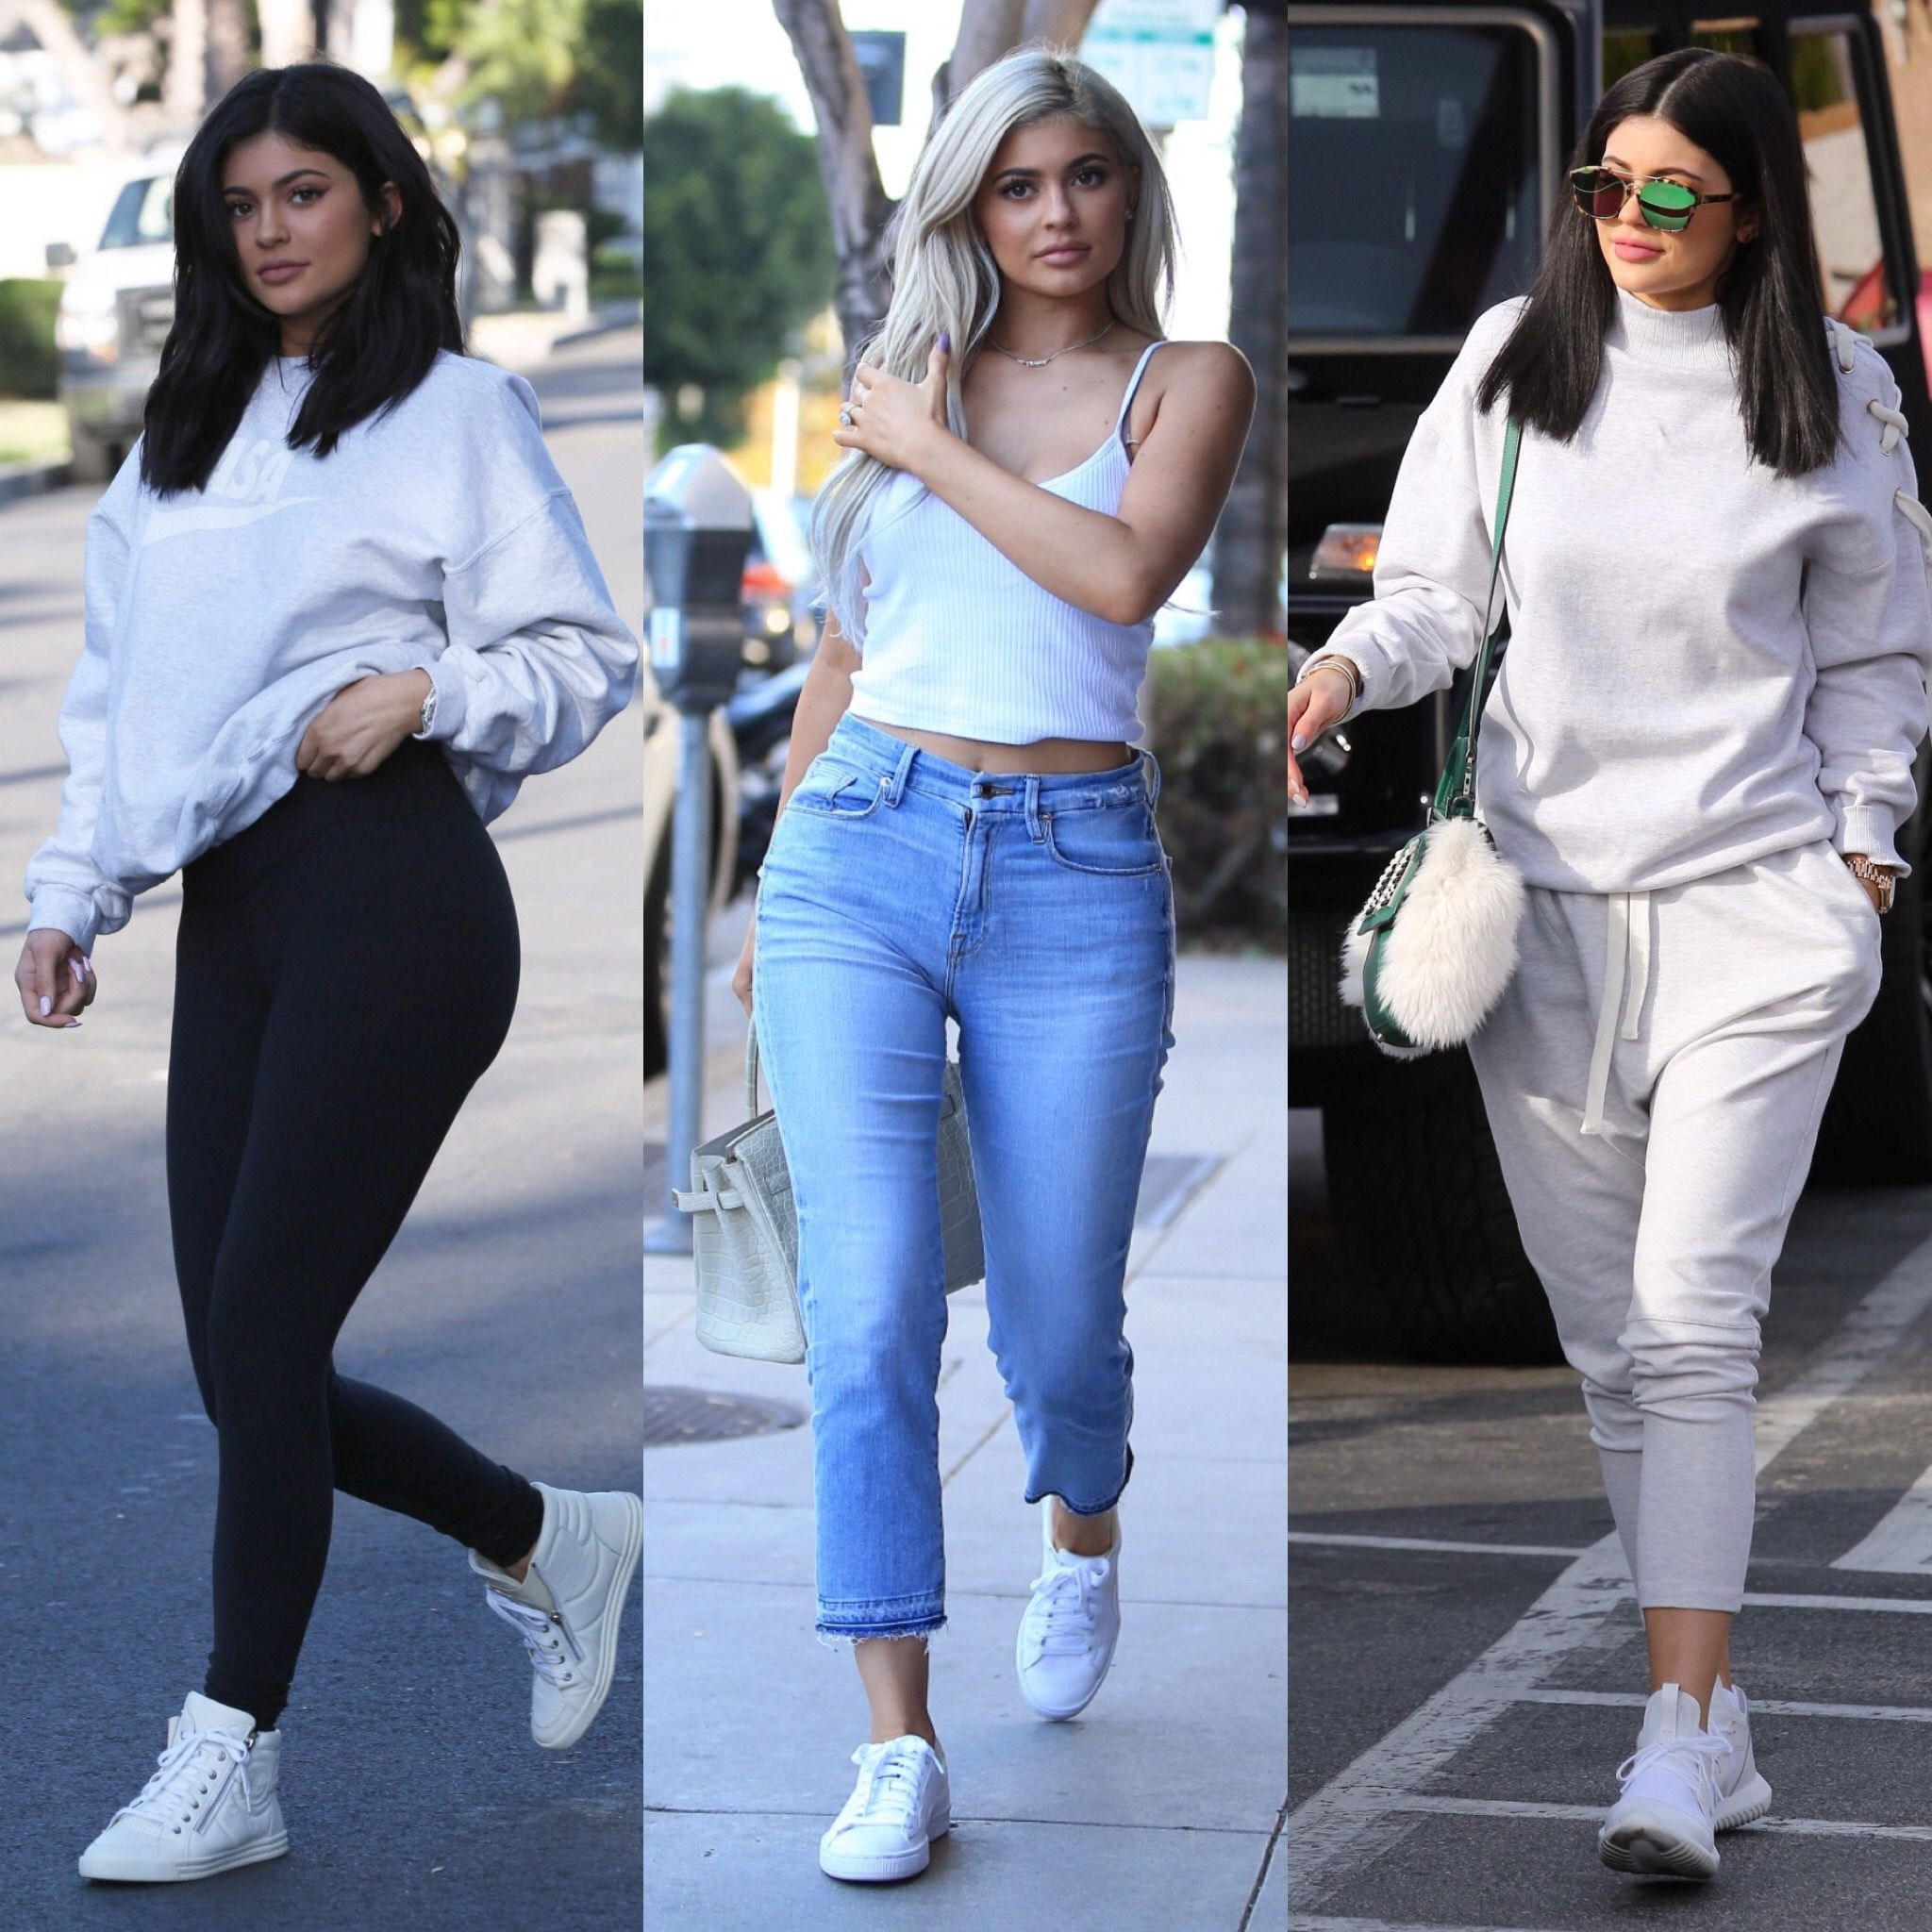 588404374dd9 kylie jenner outfits style white outfits kylie jenner streetstyle kylie  jenner blonde kylie jenner brunette kylie